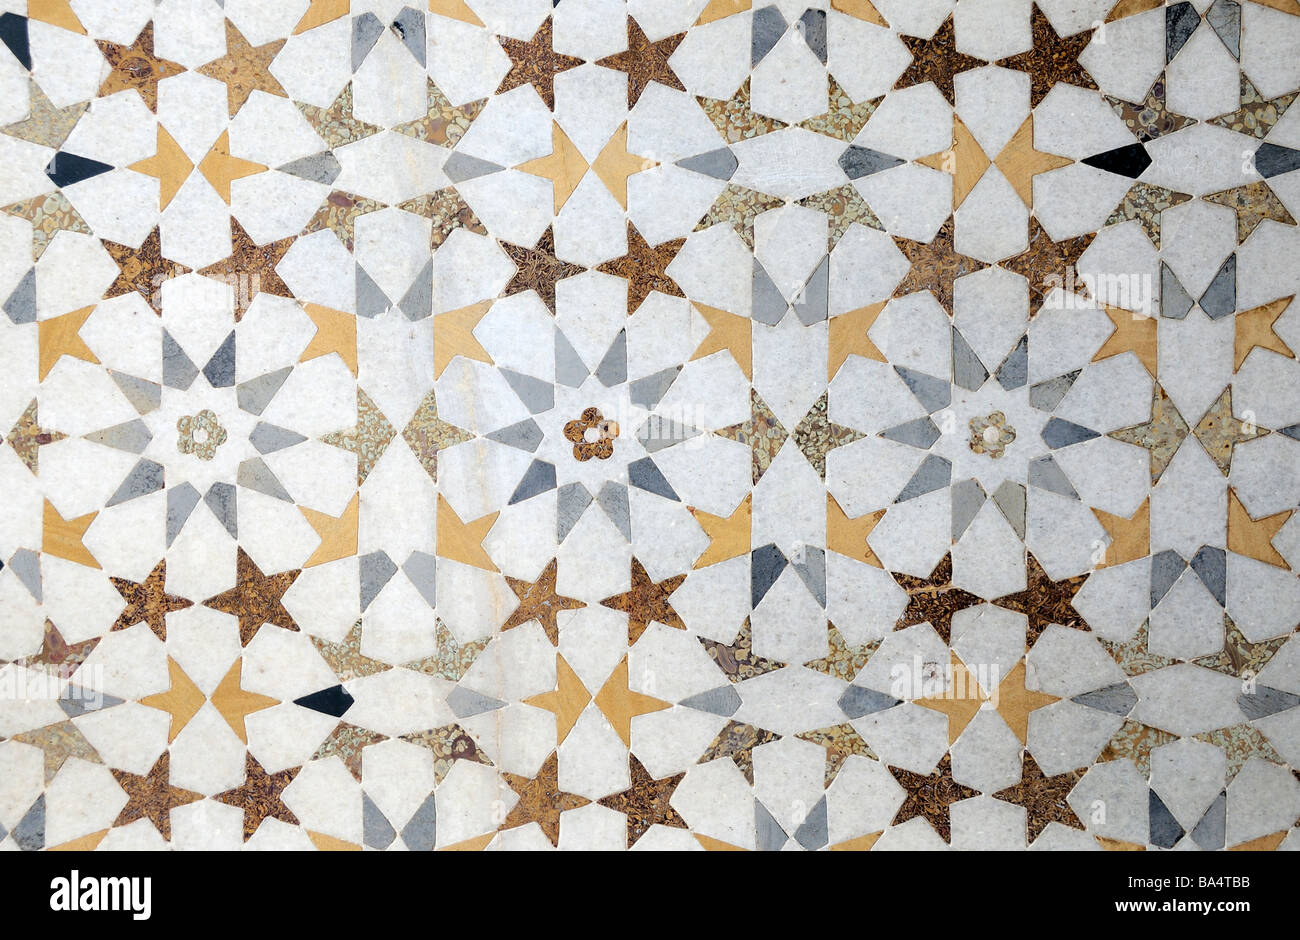 A floor made of a repeating pattern of regular shapes made from semi precious stones inlaid in white marble. Stock Photo